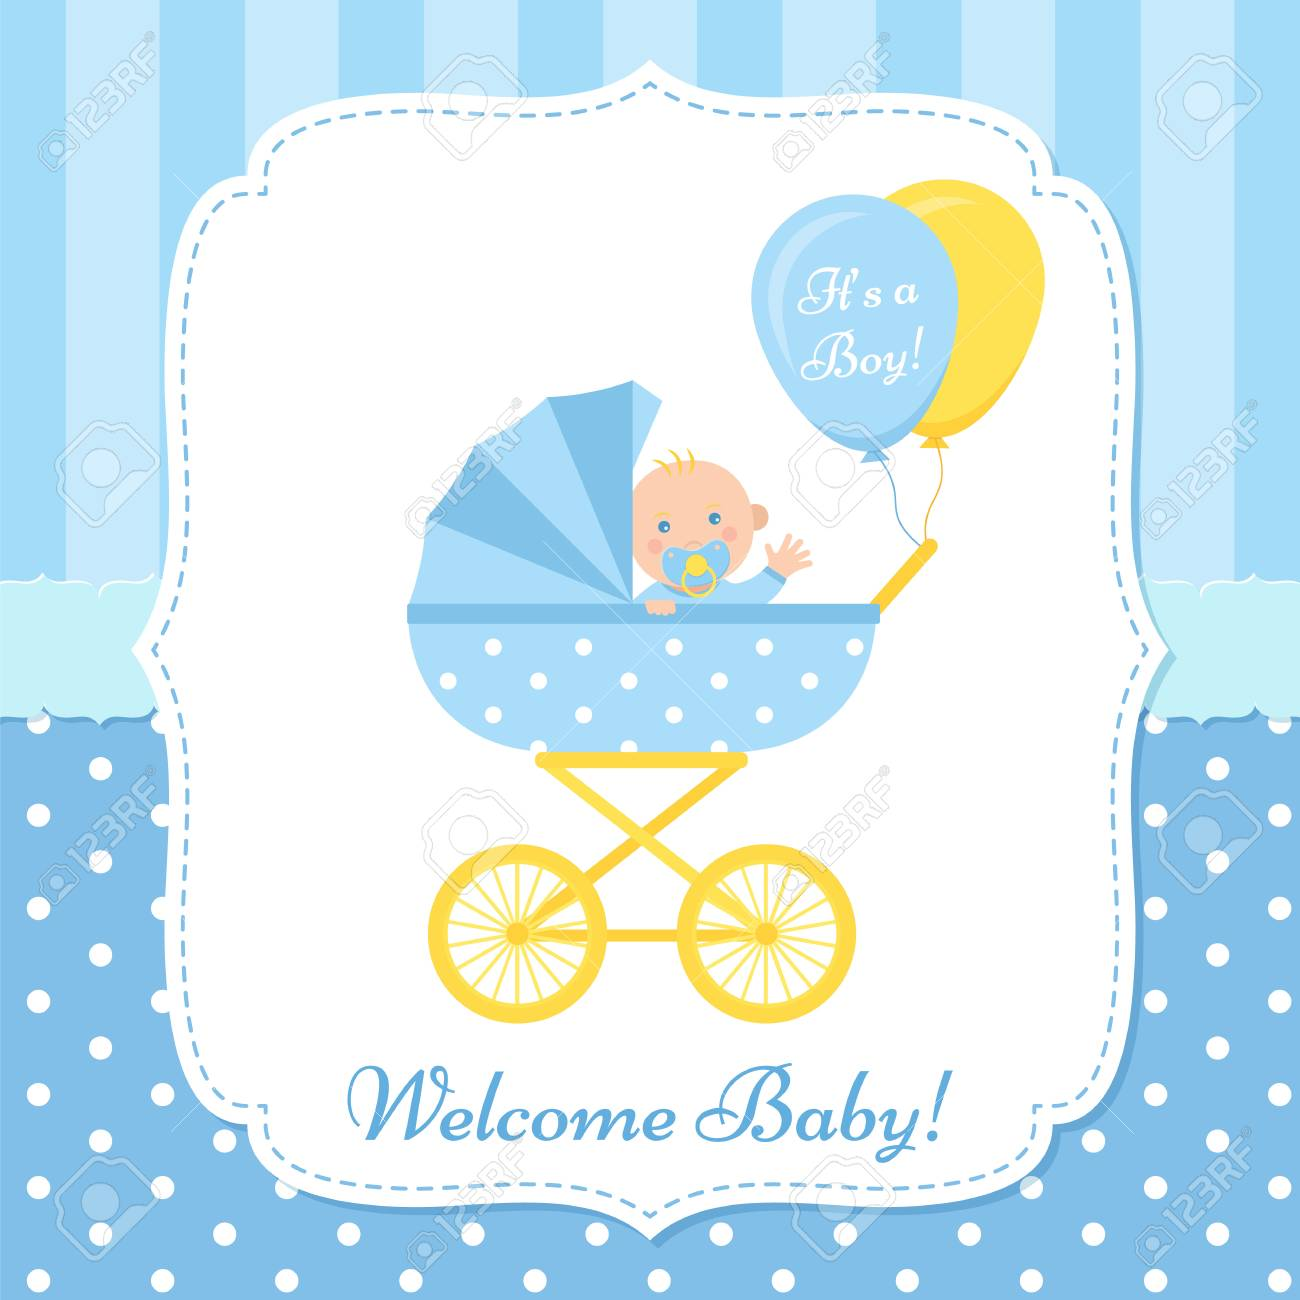 Baby Boy Invite Card Vector Baby Shower Banner Blue Design